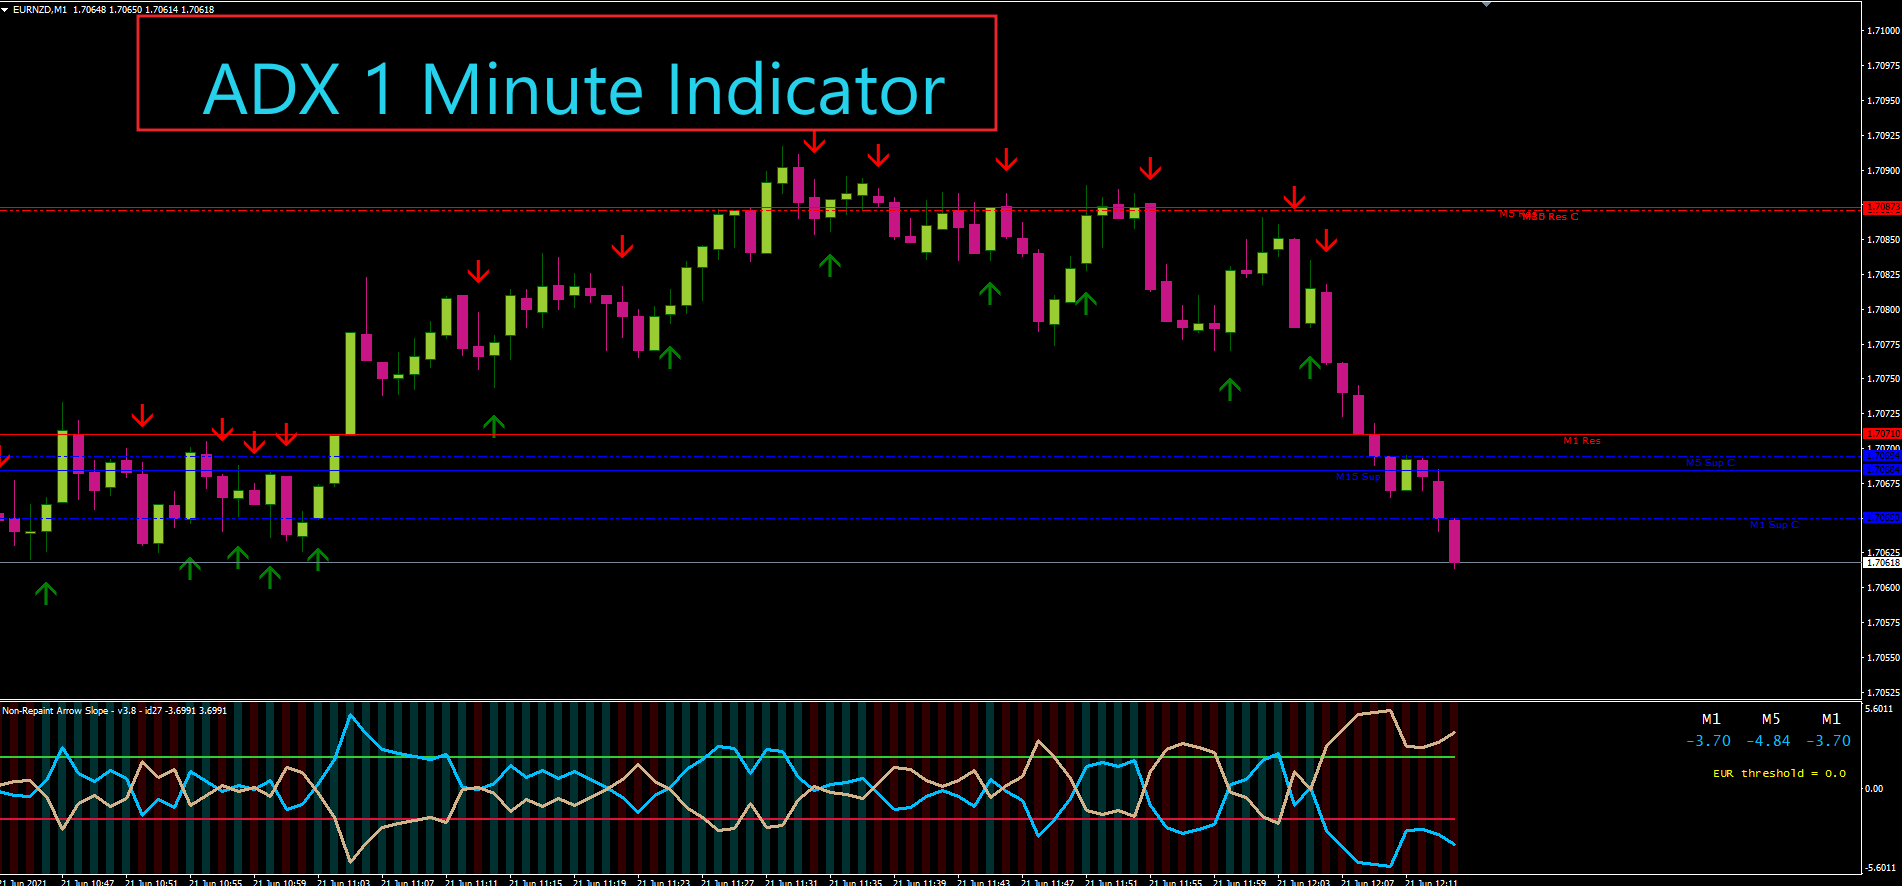 ADX Non-Repaint Arrow Slope Indicator 1 Minute Option Trade Never Lost